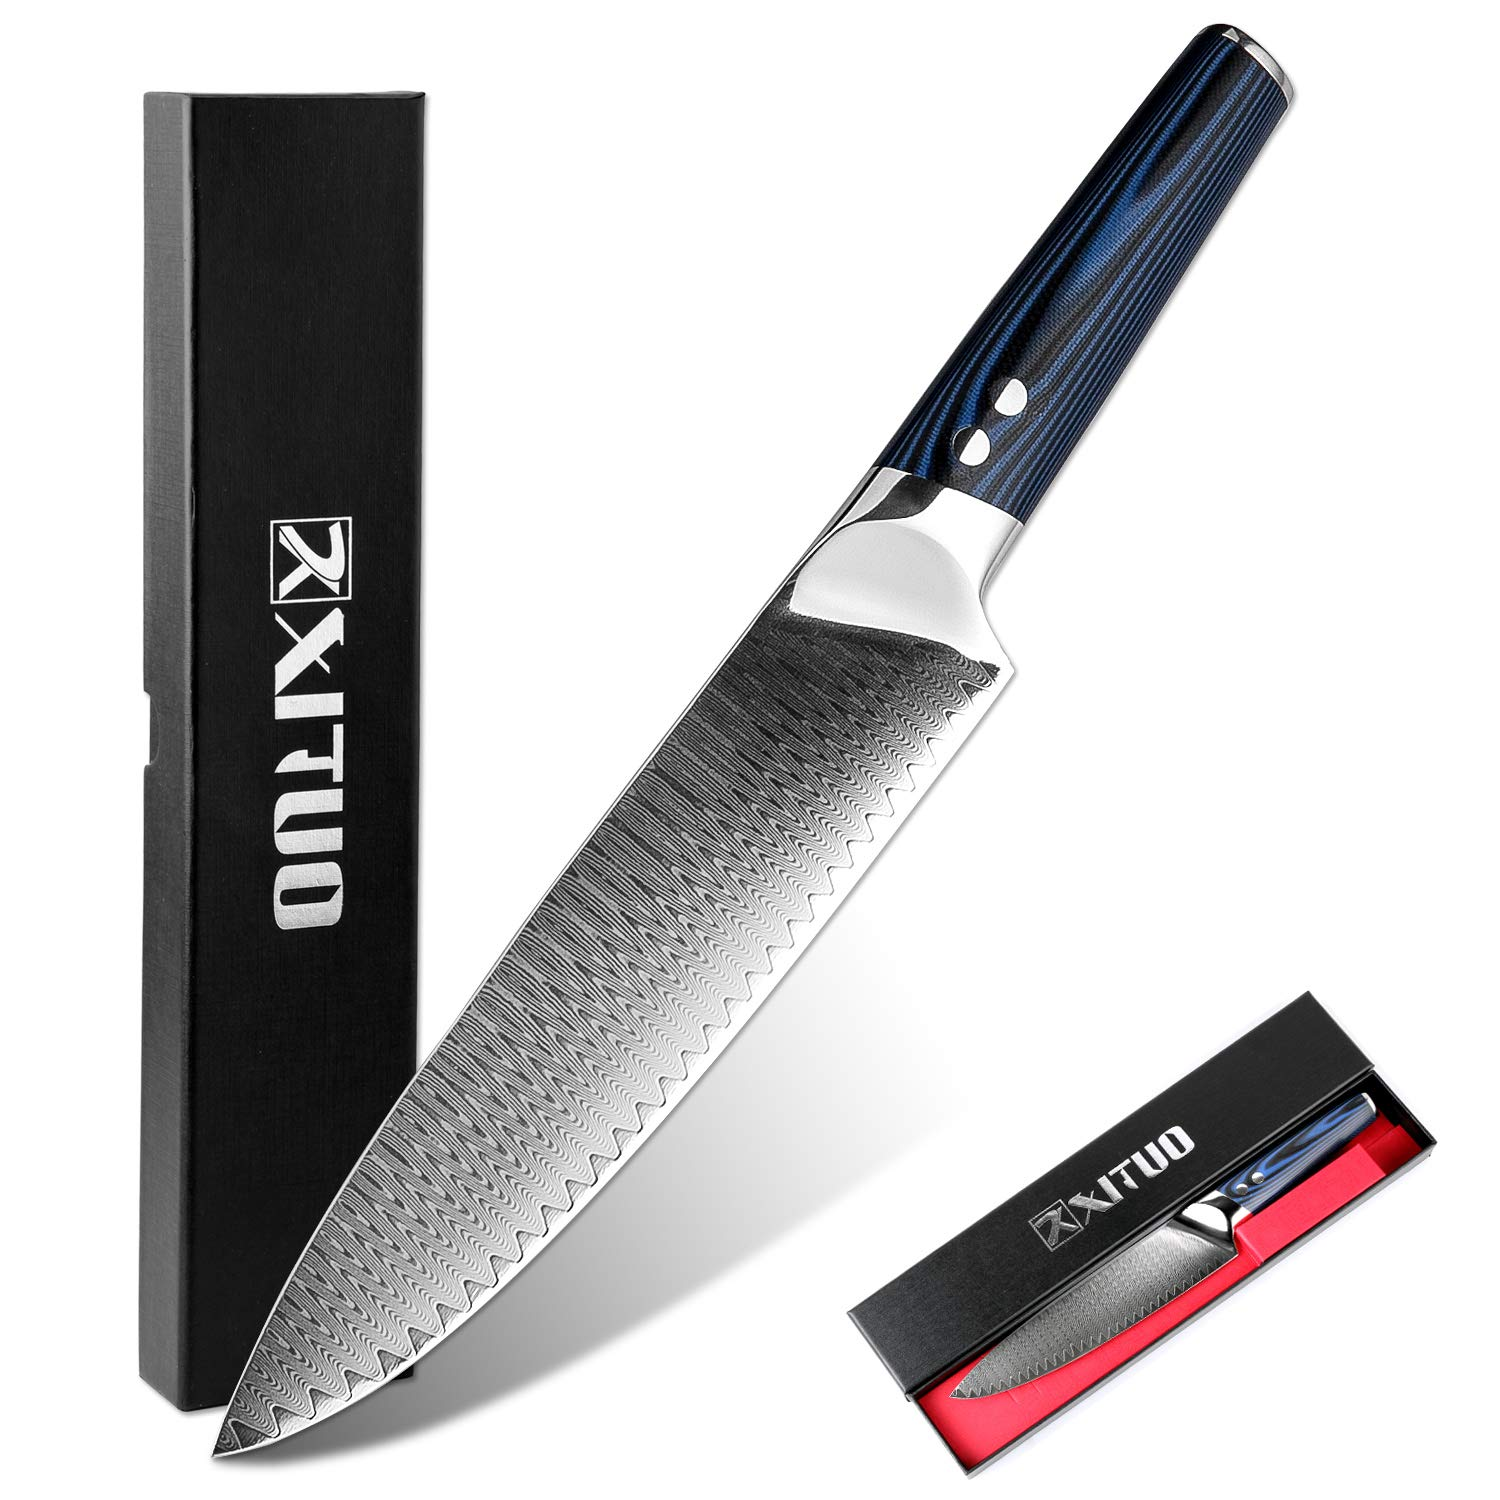 Xituo 8 Inch Chef Knife Japanese Vg 10 High Carbon Damascus Stainless Steel Kitchen Knife With Ergonomic Micarta Handle And Razor Sharp Blade For Dealing